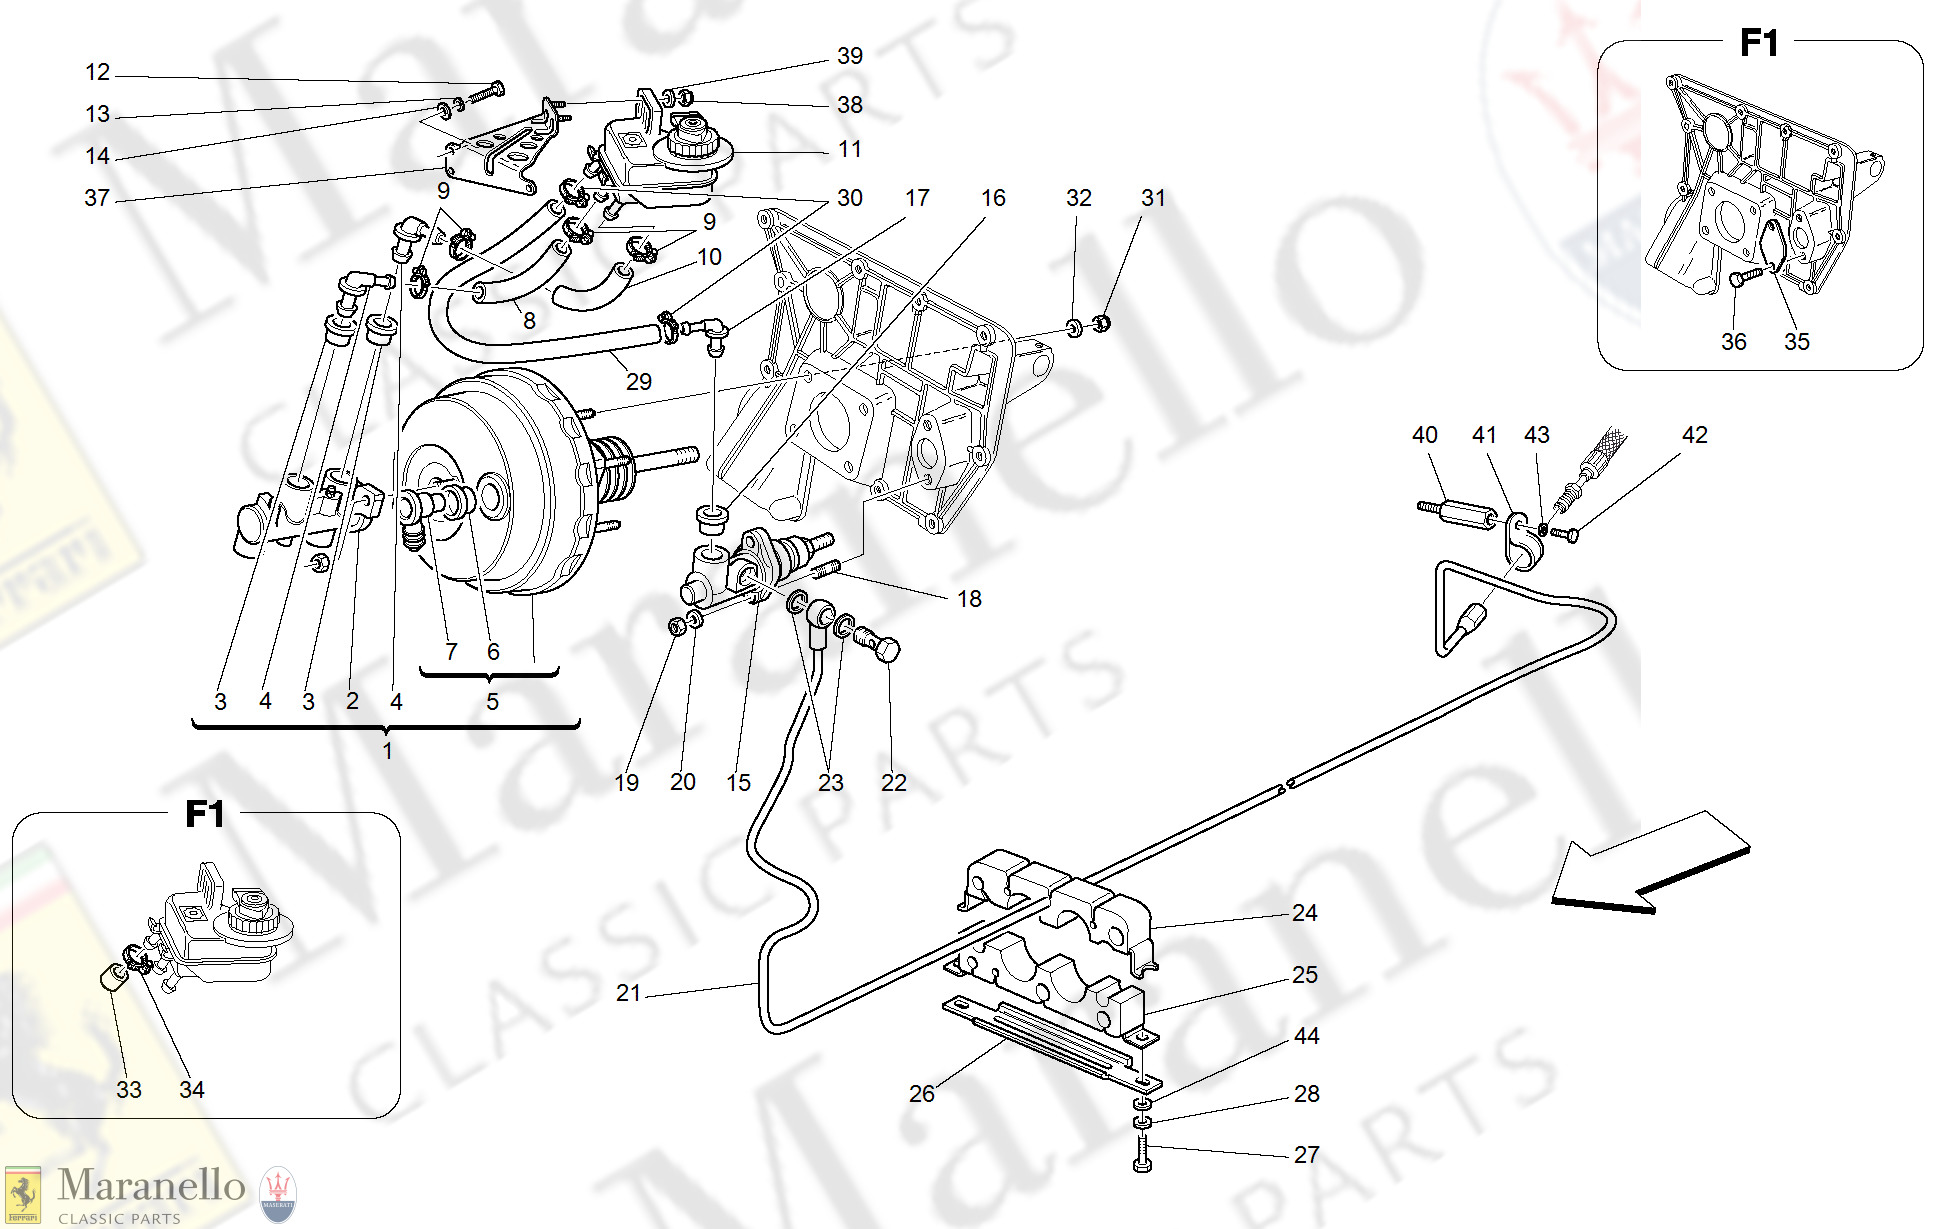 040 - Brakes And Clutch Hydraulic Controls -Valid For Gd-